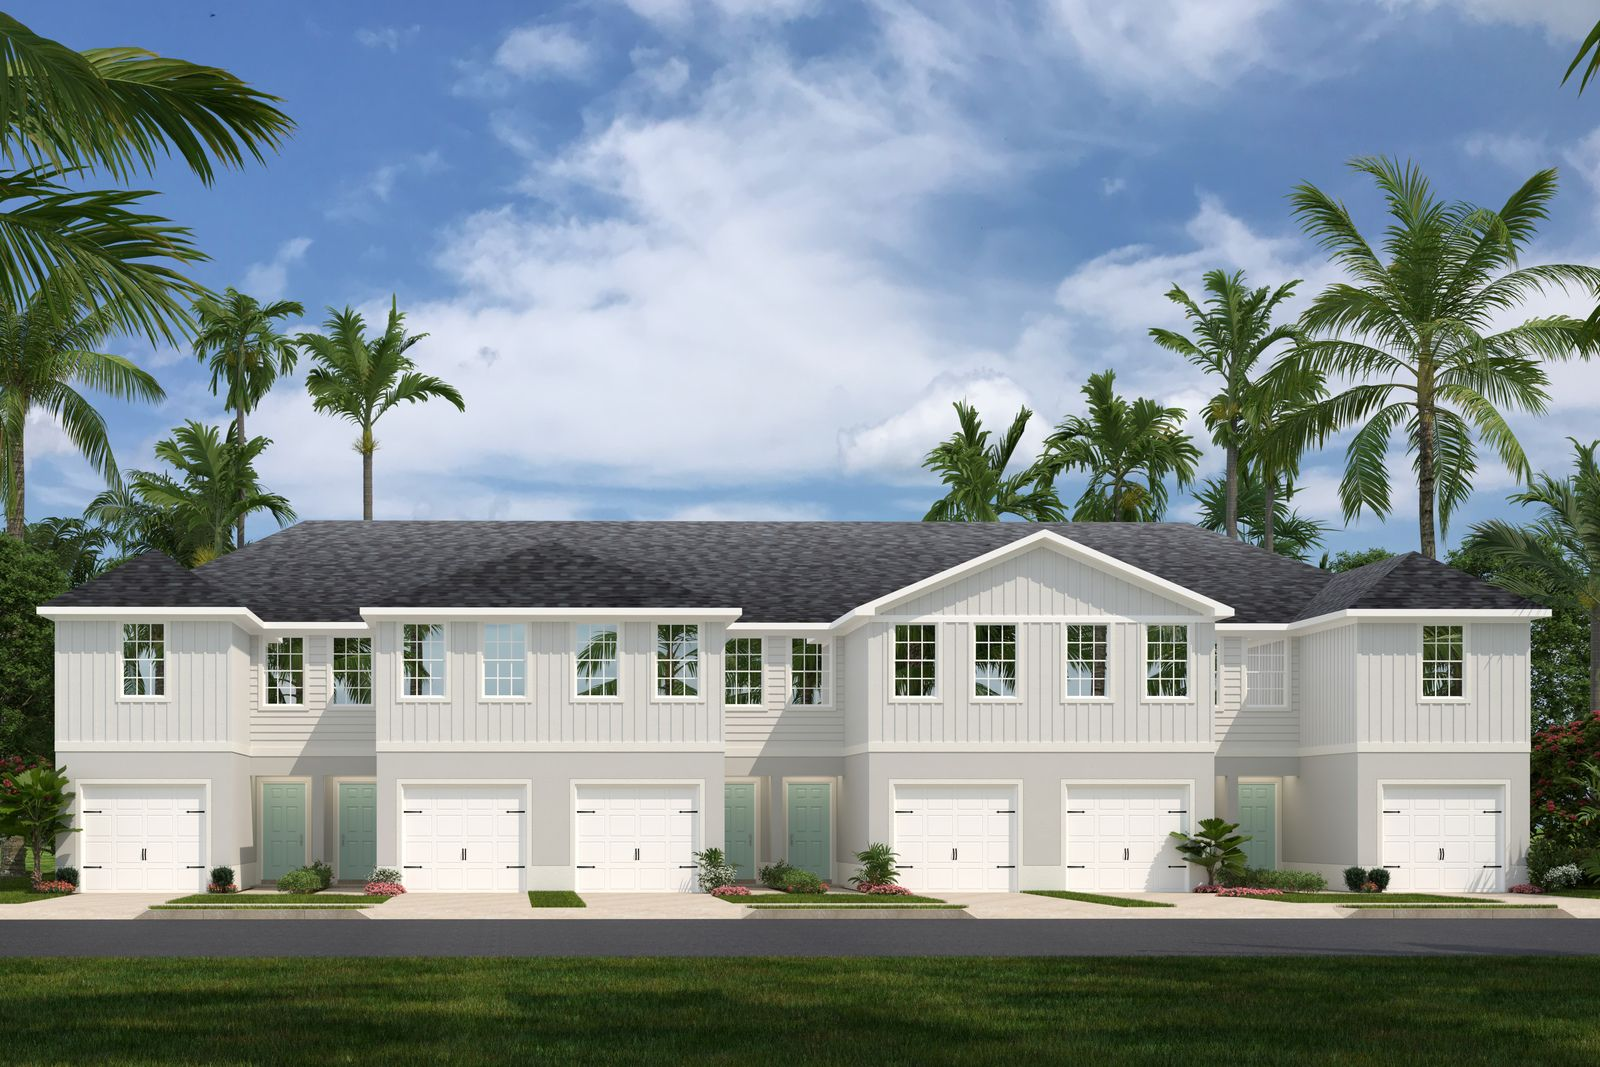 Welcome to Magnolia Grove in Davenport, FL!:Come home to Davenport's new boutique townhome community! Enjoy Florida sunshine all year long while living close to all of the attractions. Starting from Mid 200s. Schedule a visittoday!